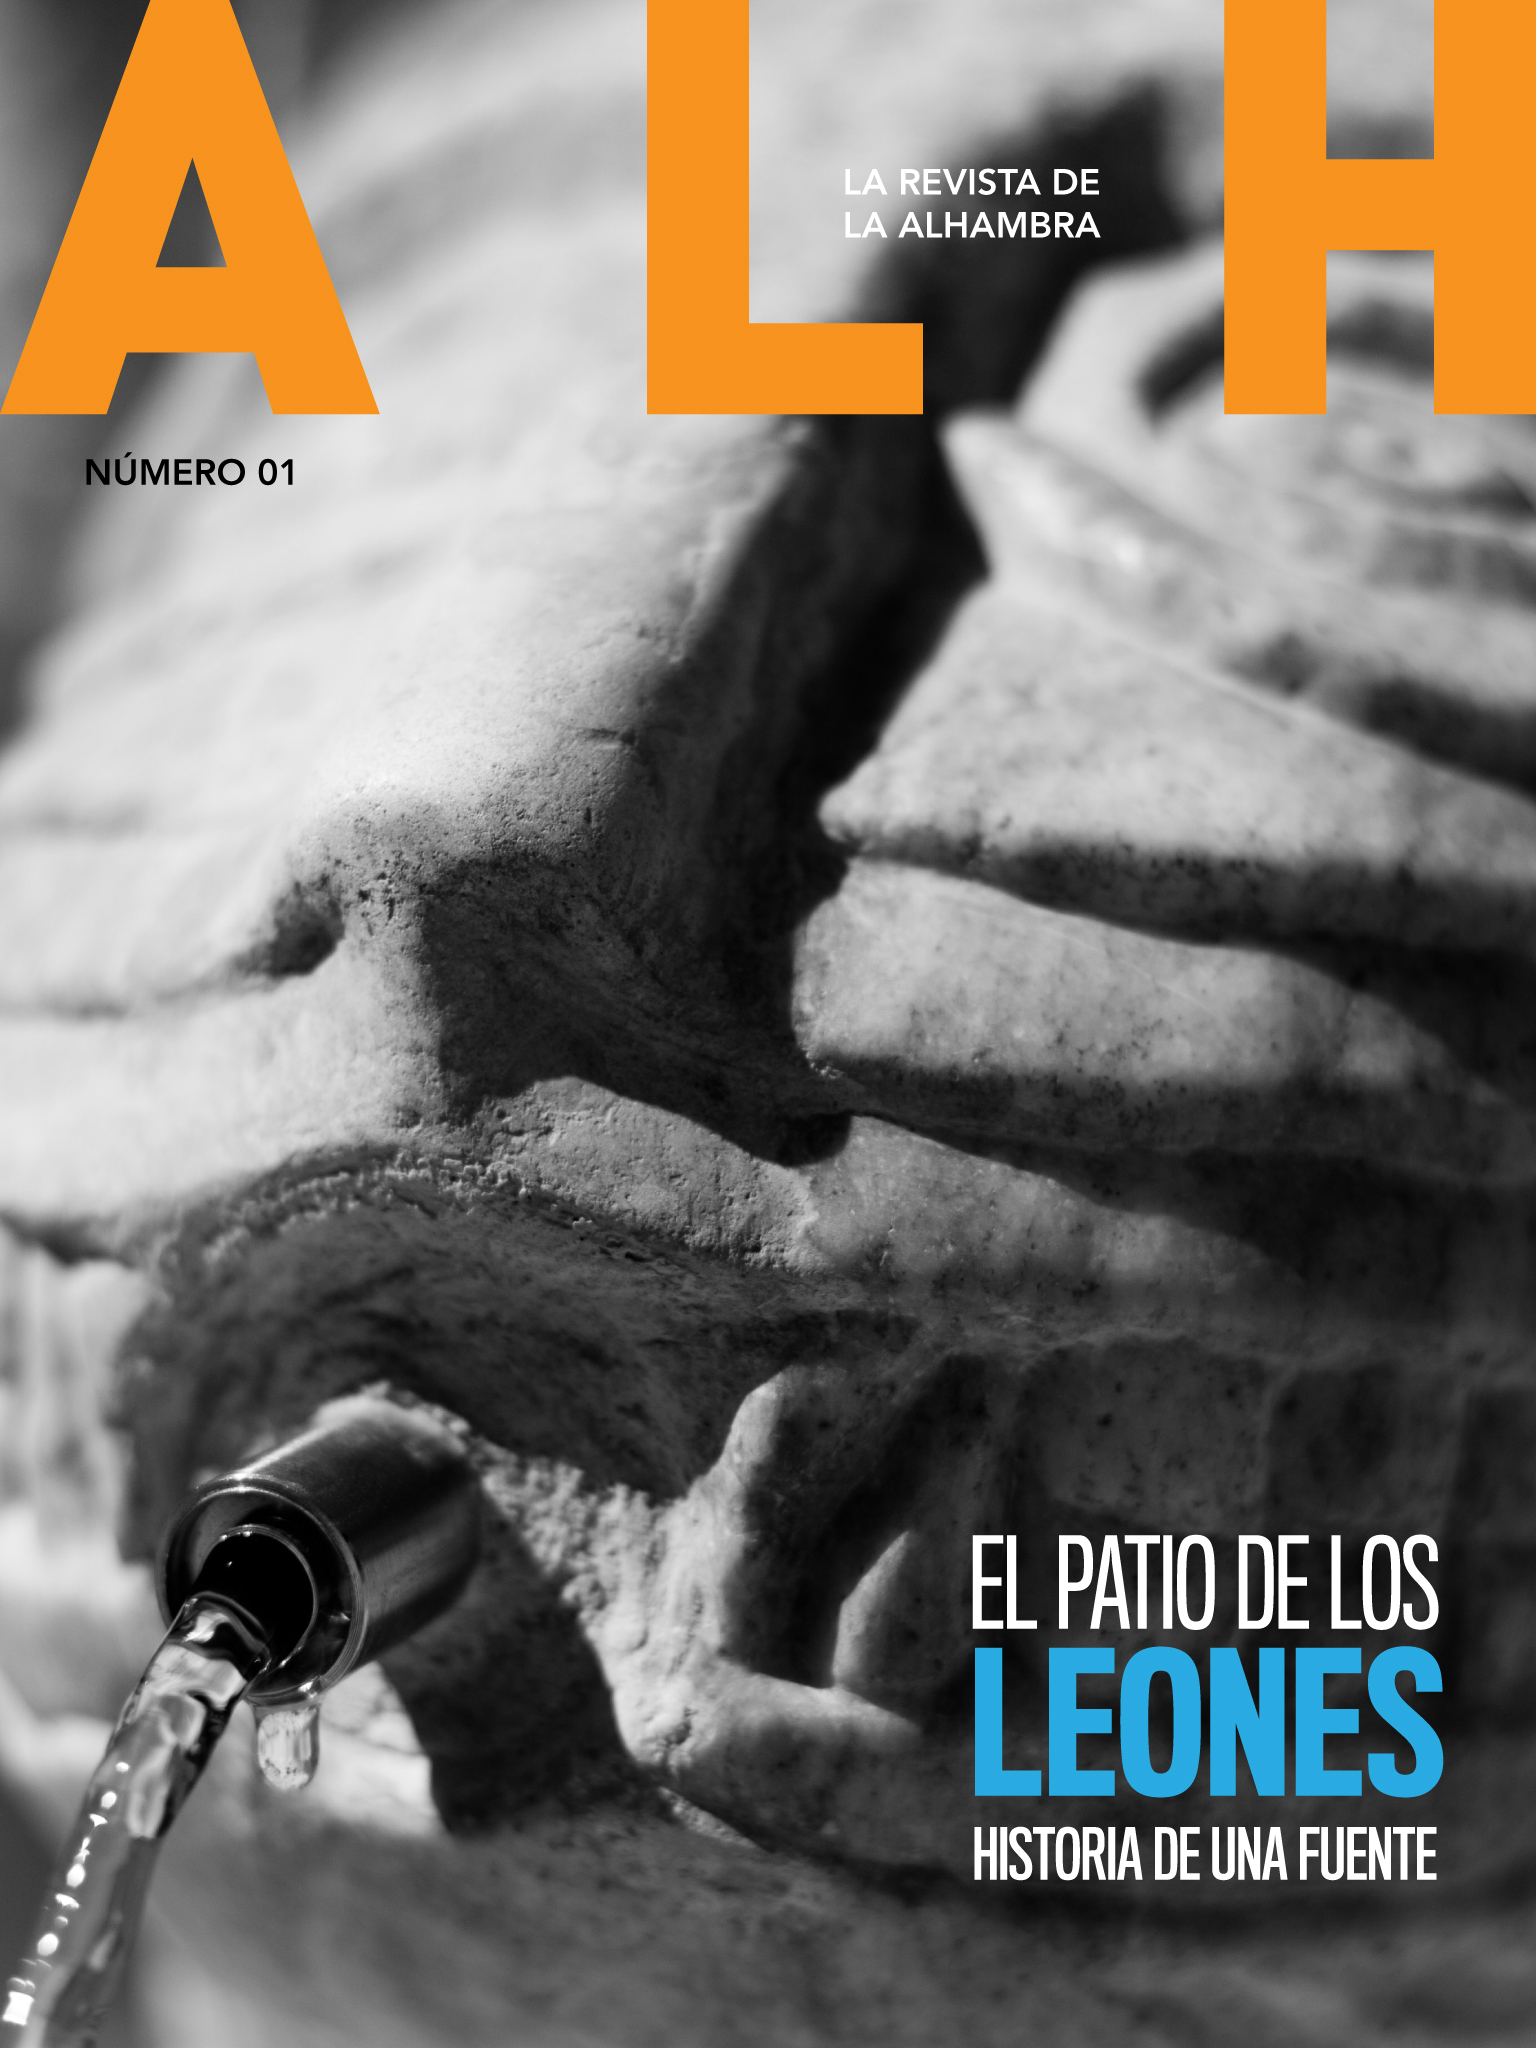 ALH Magazine, the voice of the Alhambra for the 21st Century